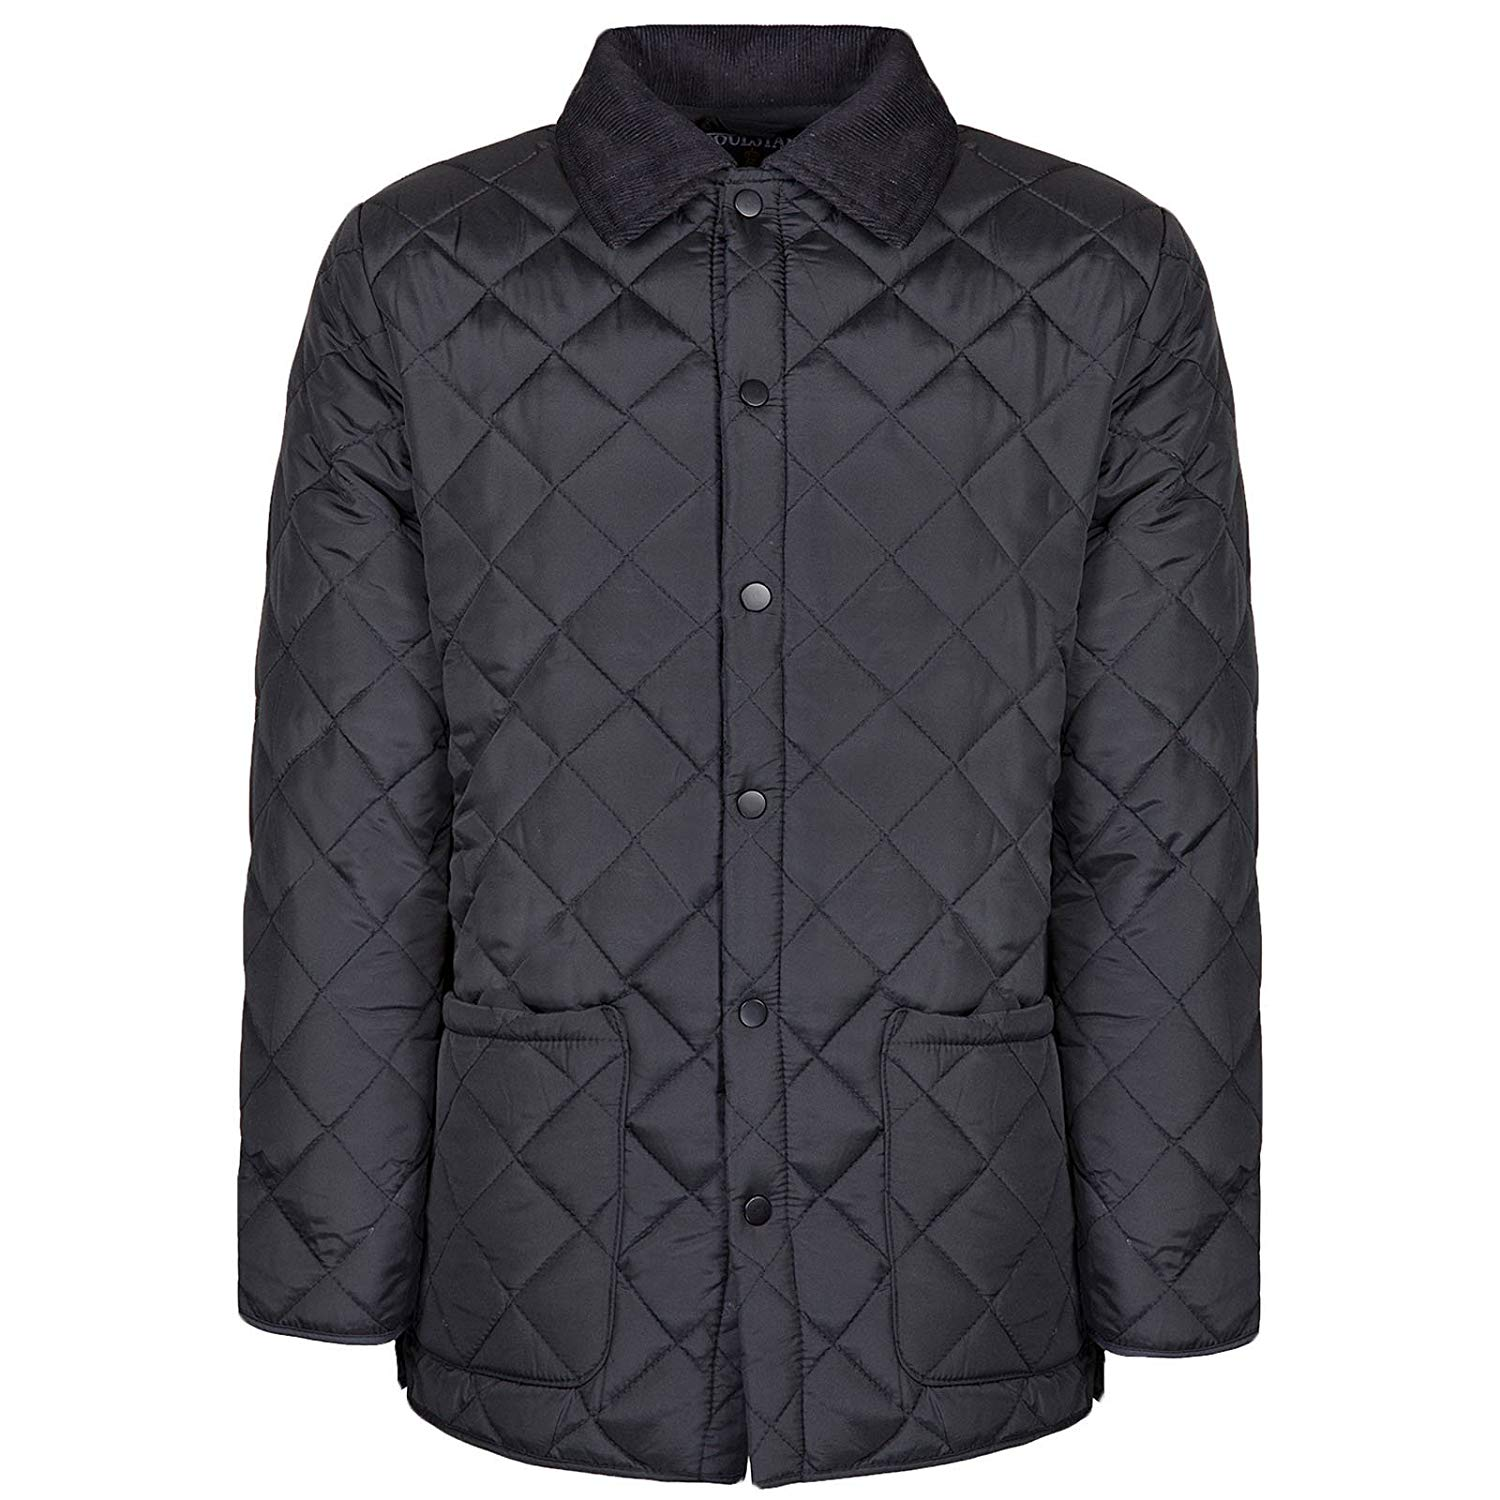 Soul Star Mens Diamond Quilted Jacket